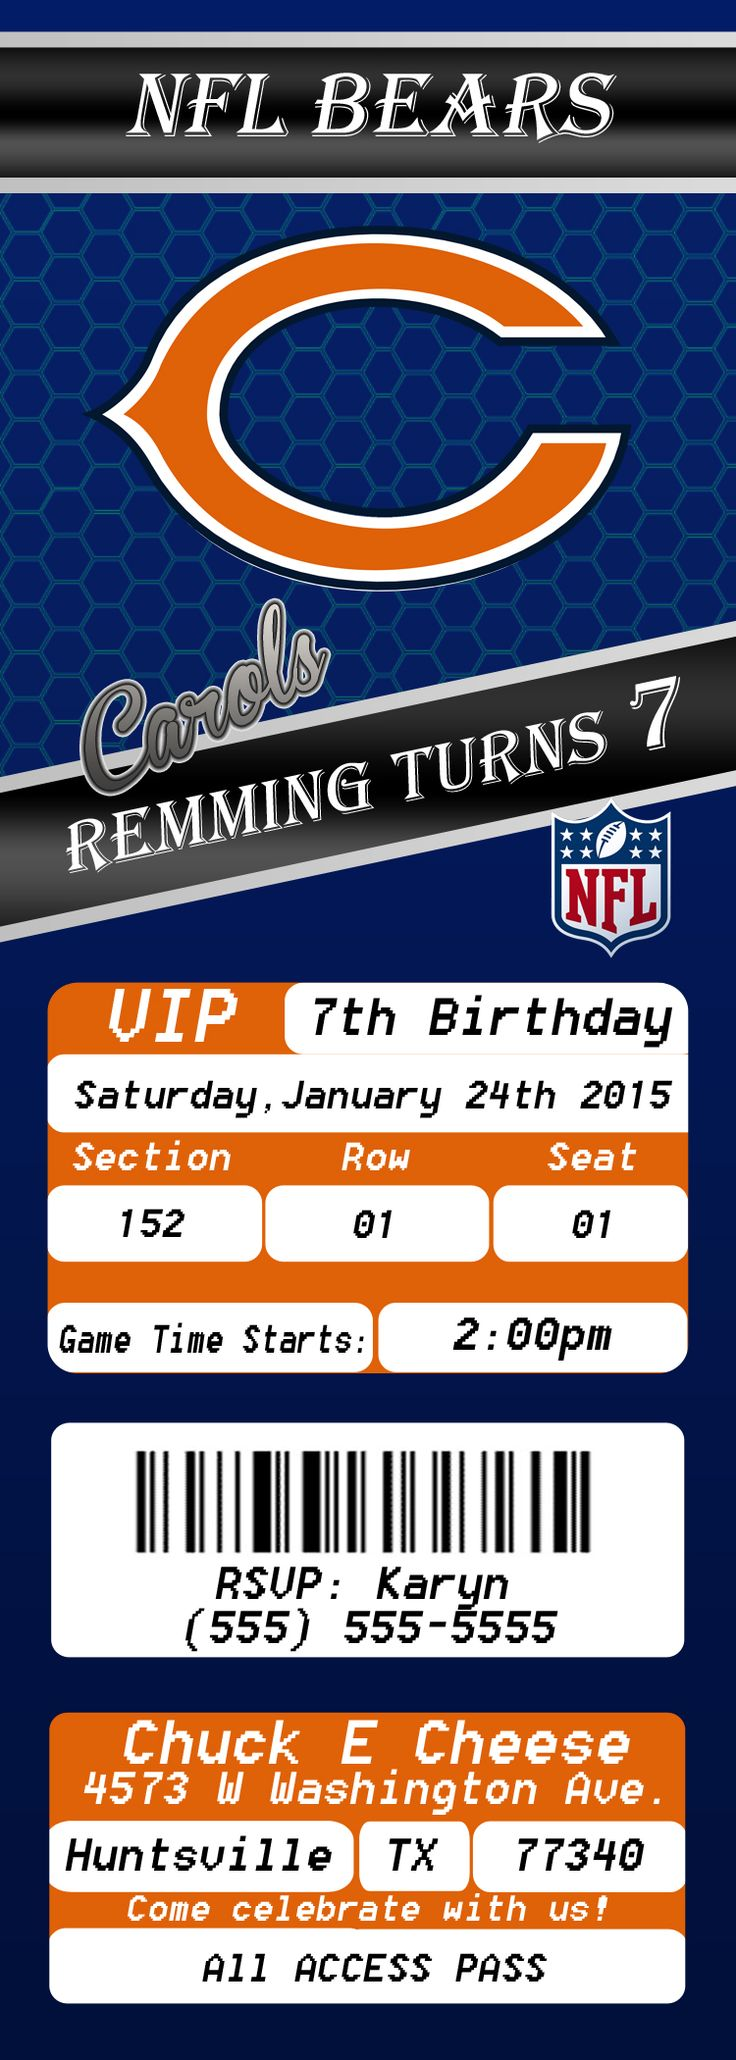 the best bears tickets ideas on pinterest twins tickets baby shower prizes and raffle tickets